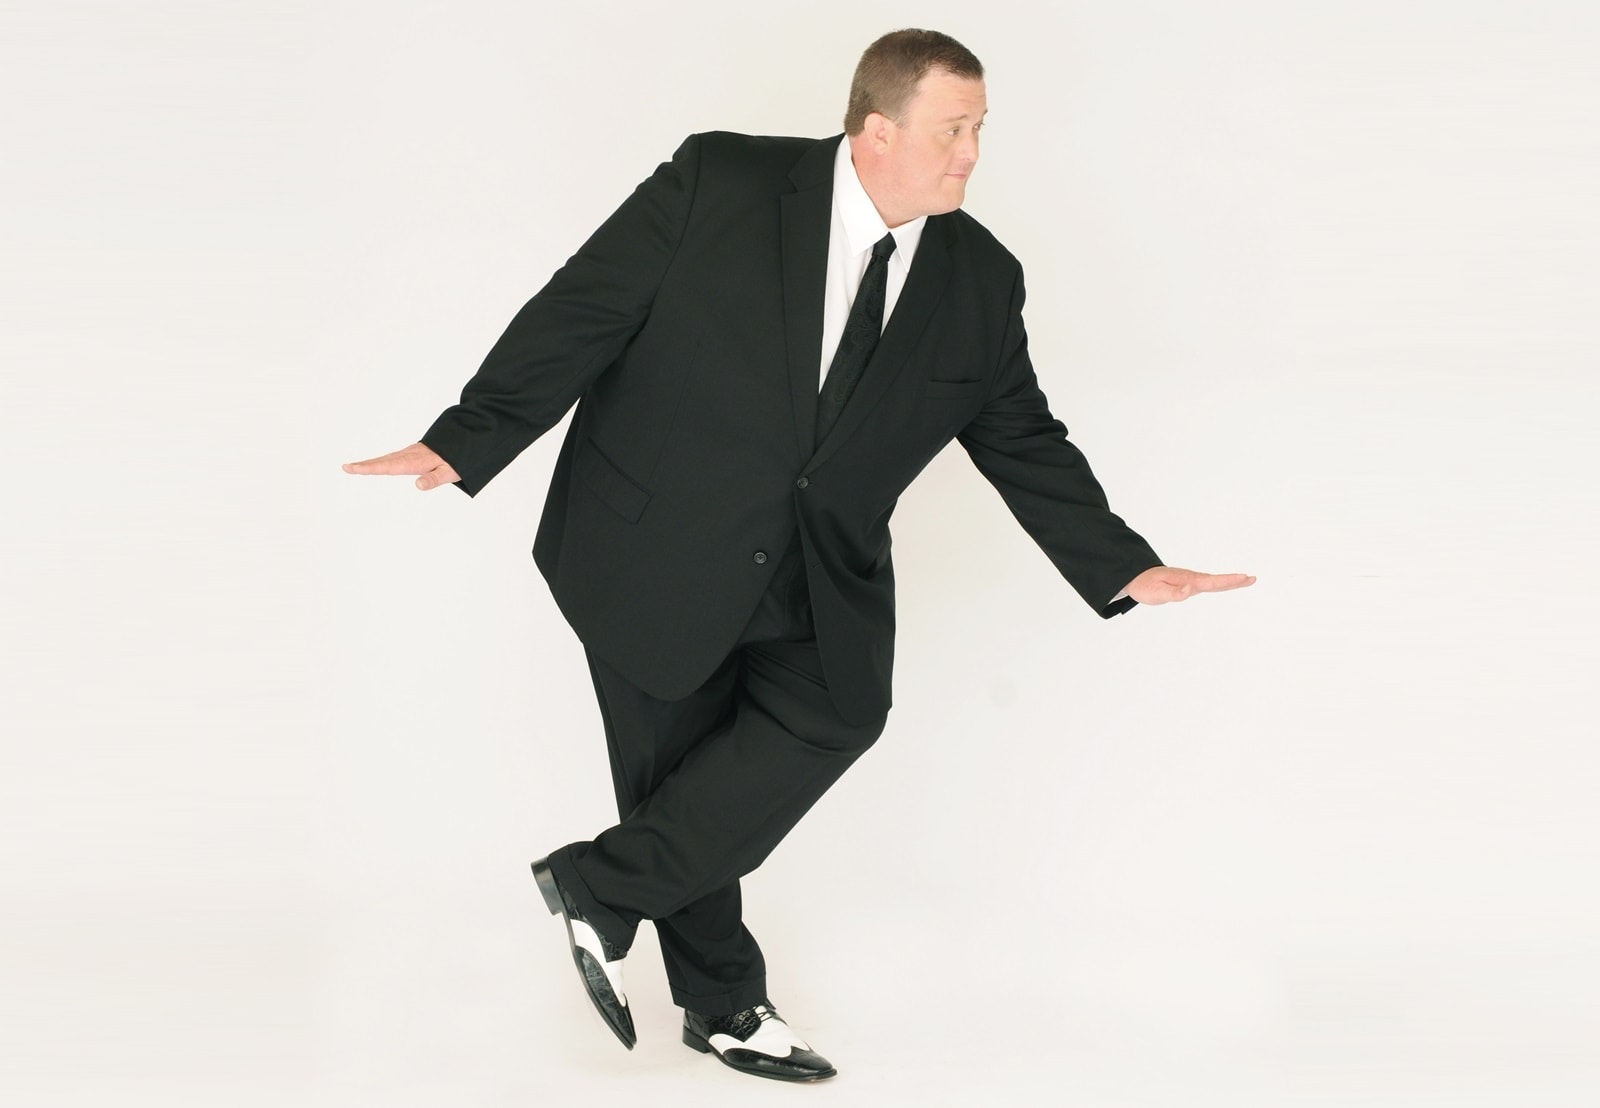 Billy Gardell HQ wallpapers